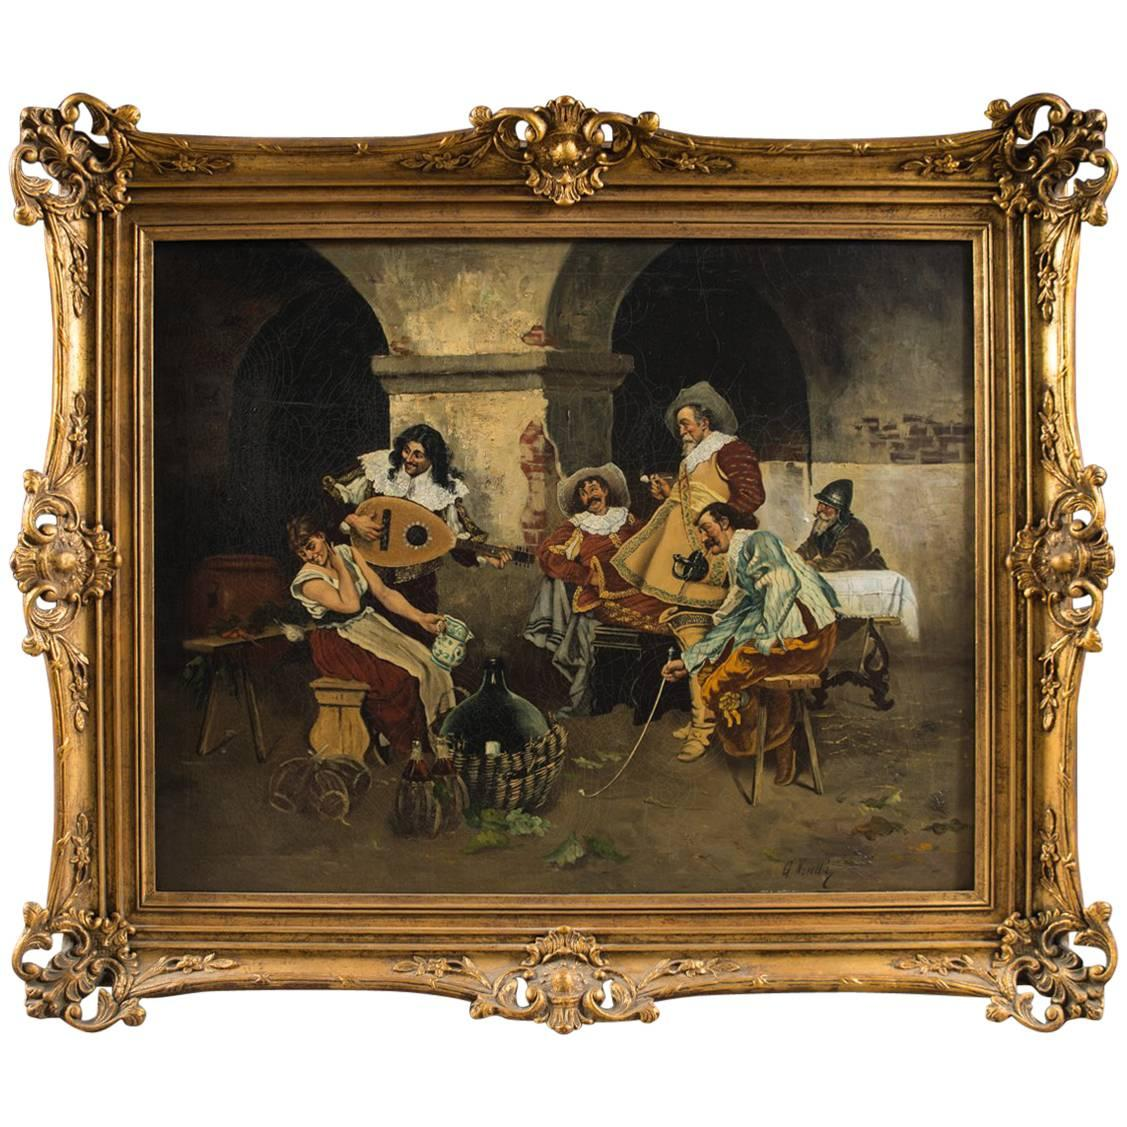 Oil Painting of Musketeers in an Interior